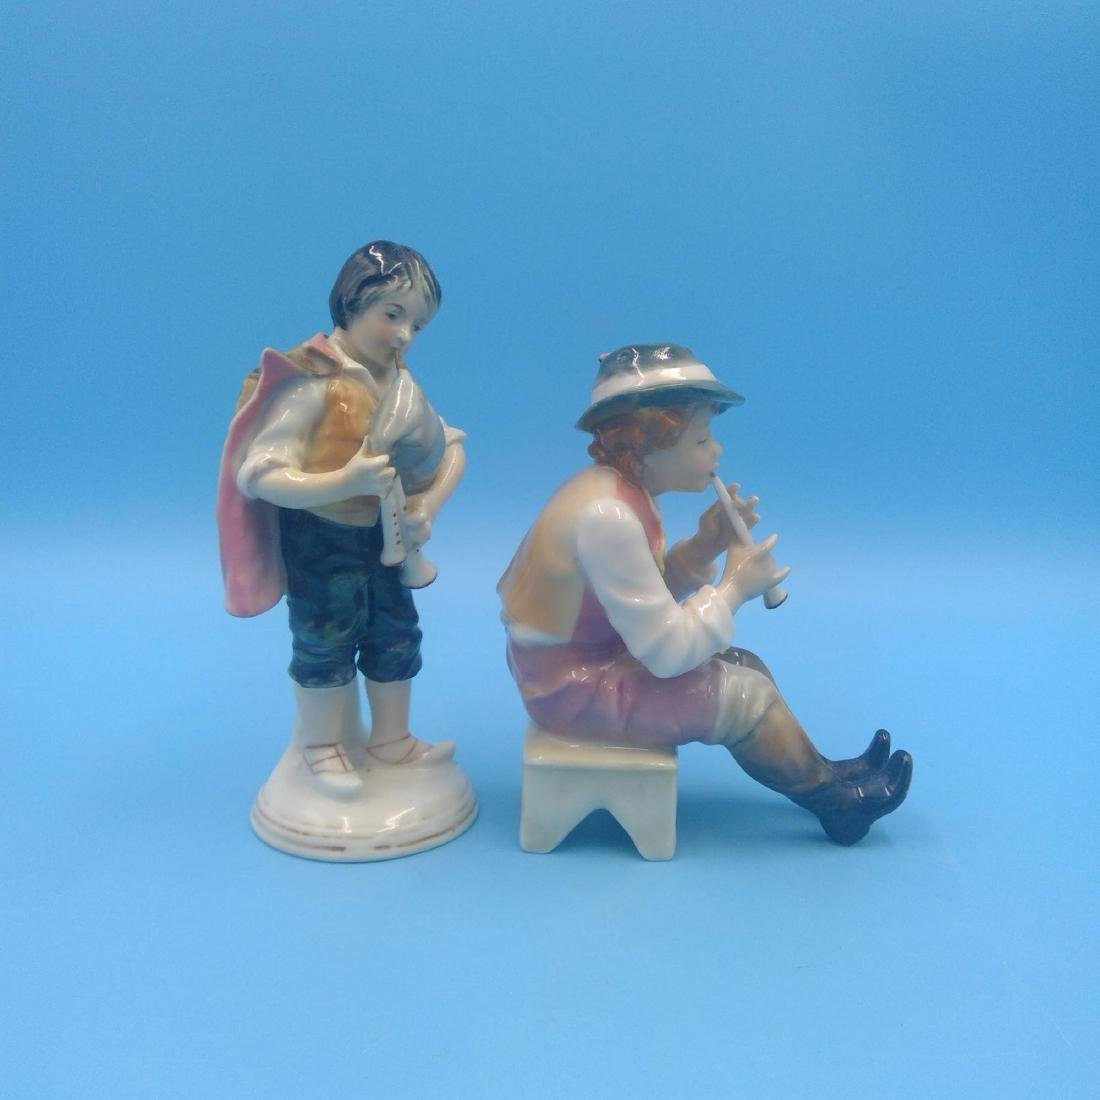 GROUP OF 2 KARL ENS MUSICIANS FIGURINES - 4